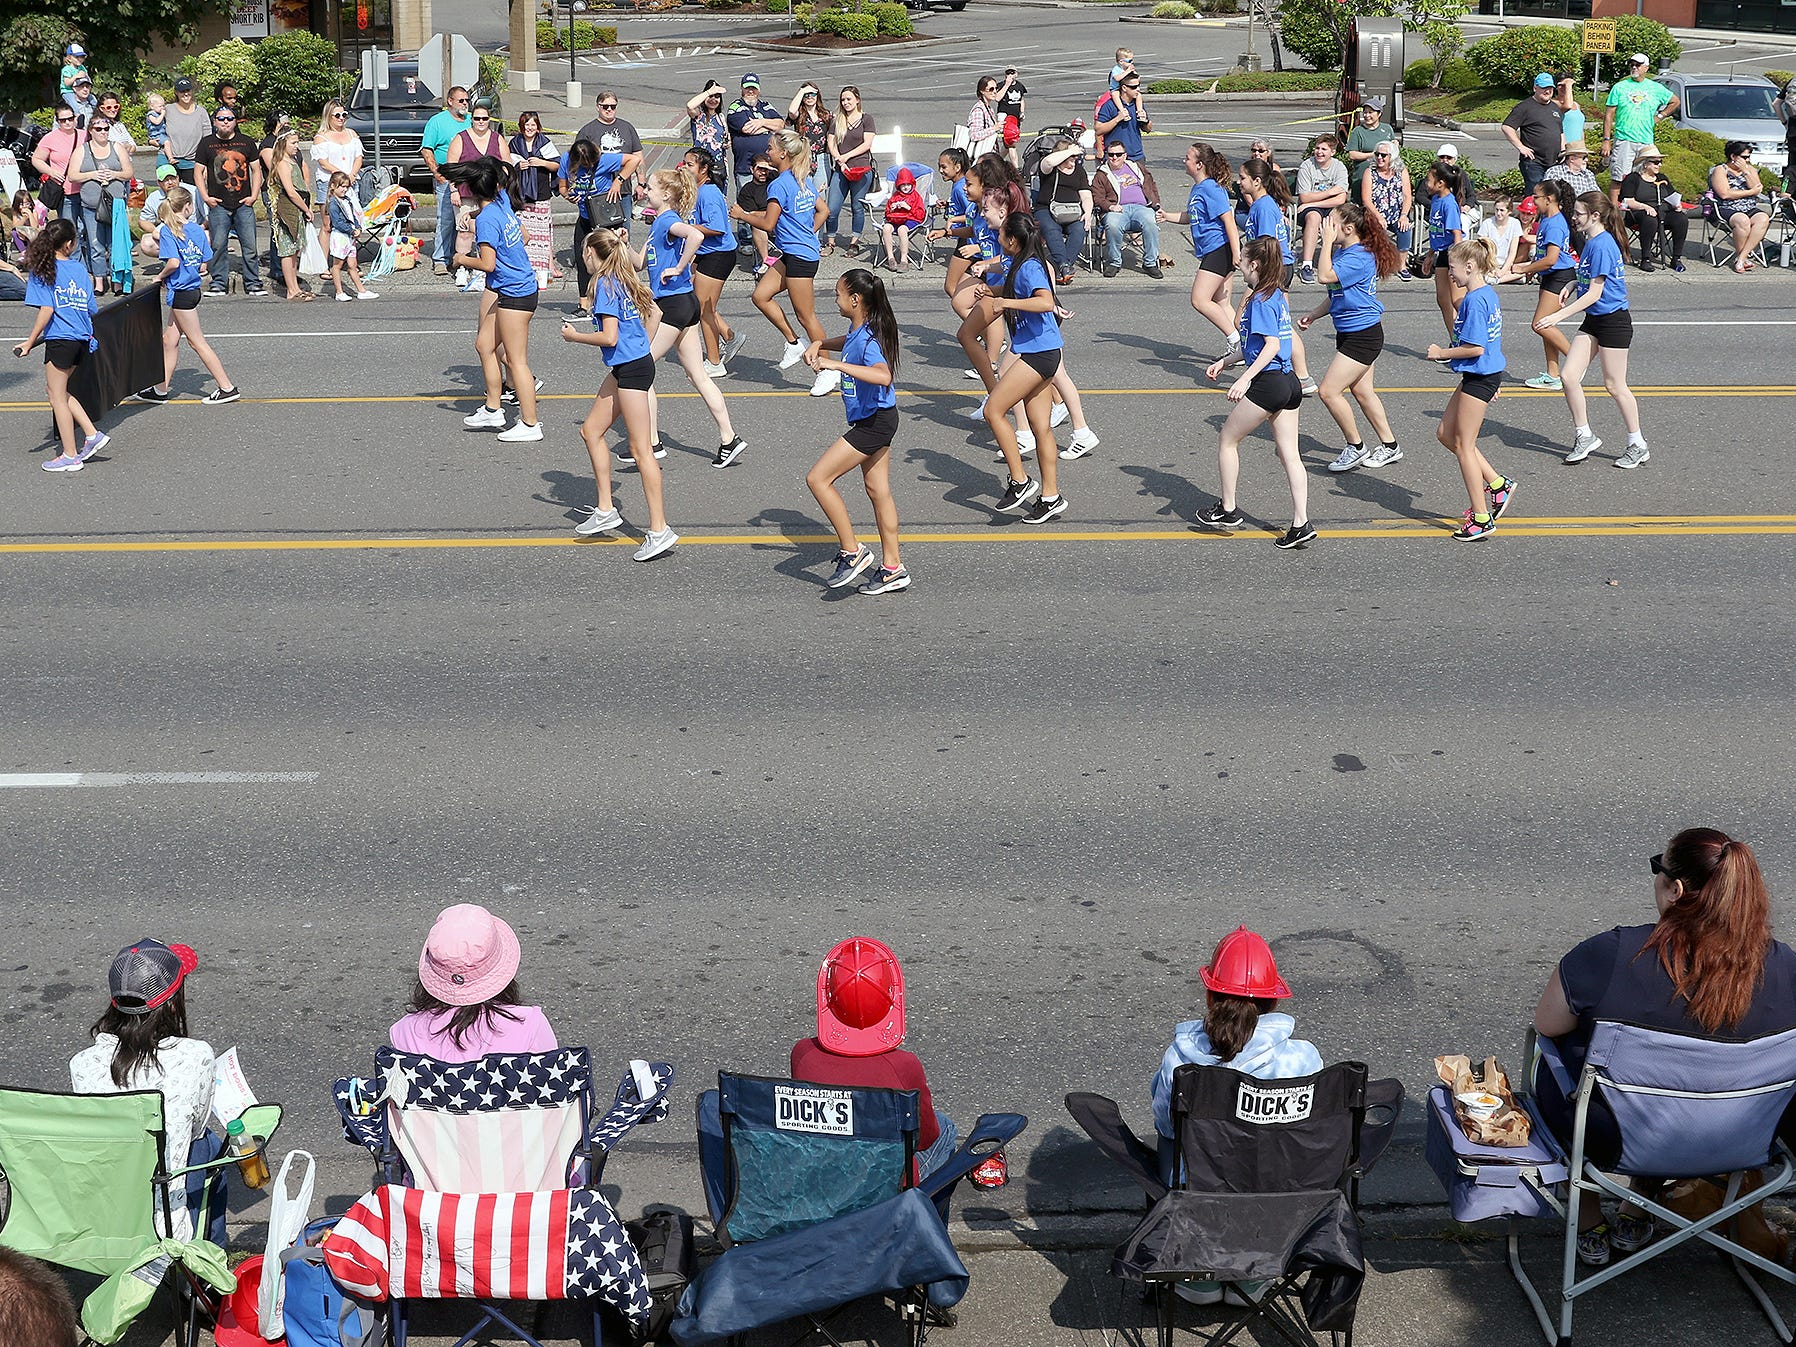 The Whaling Days Festival Parade along Silverdale Way in Silverdale, WA on Saturday, July 28, 2018.